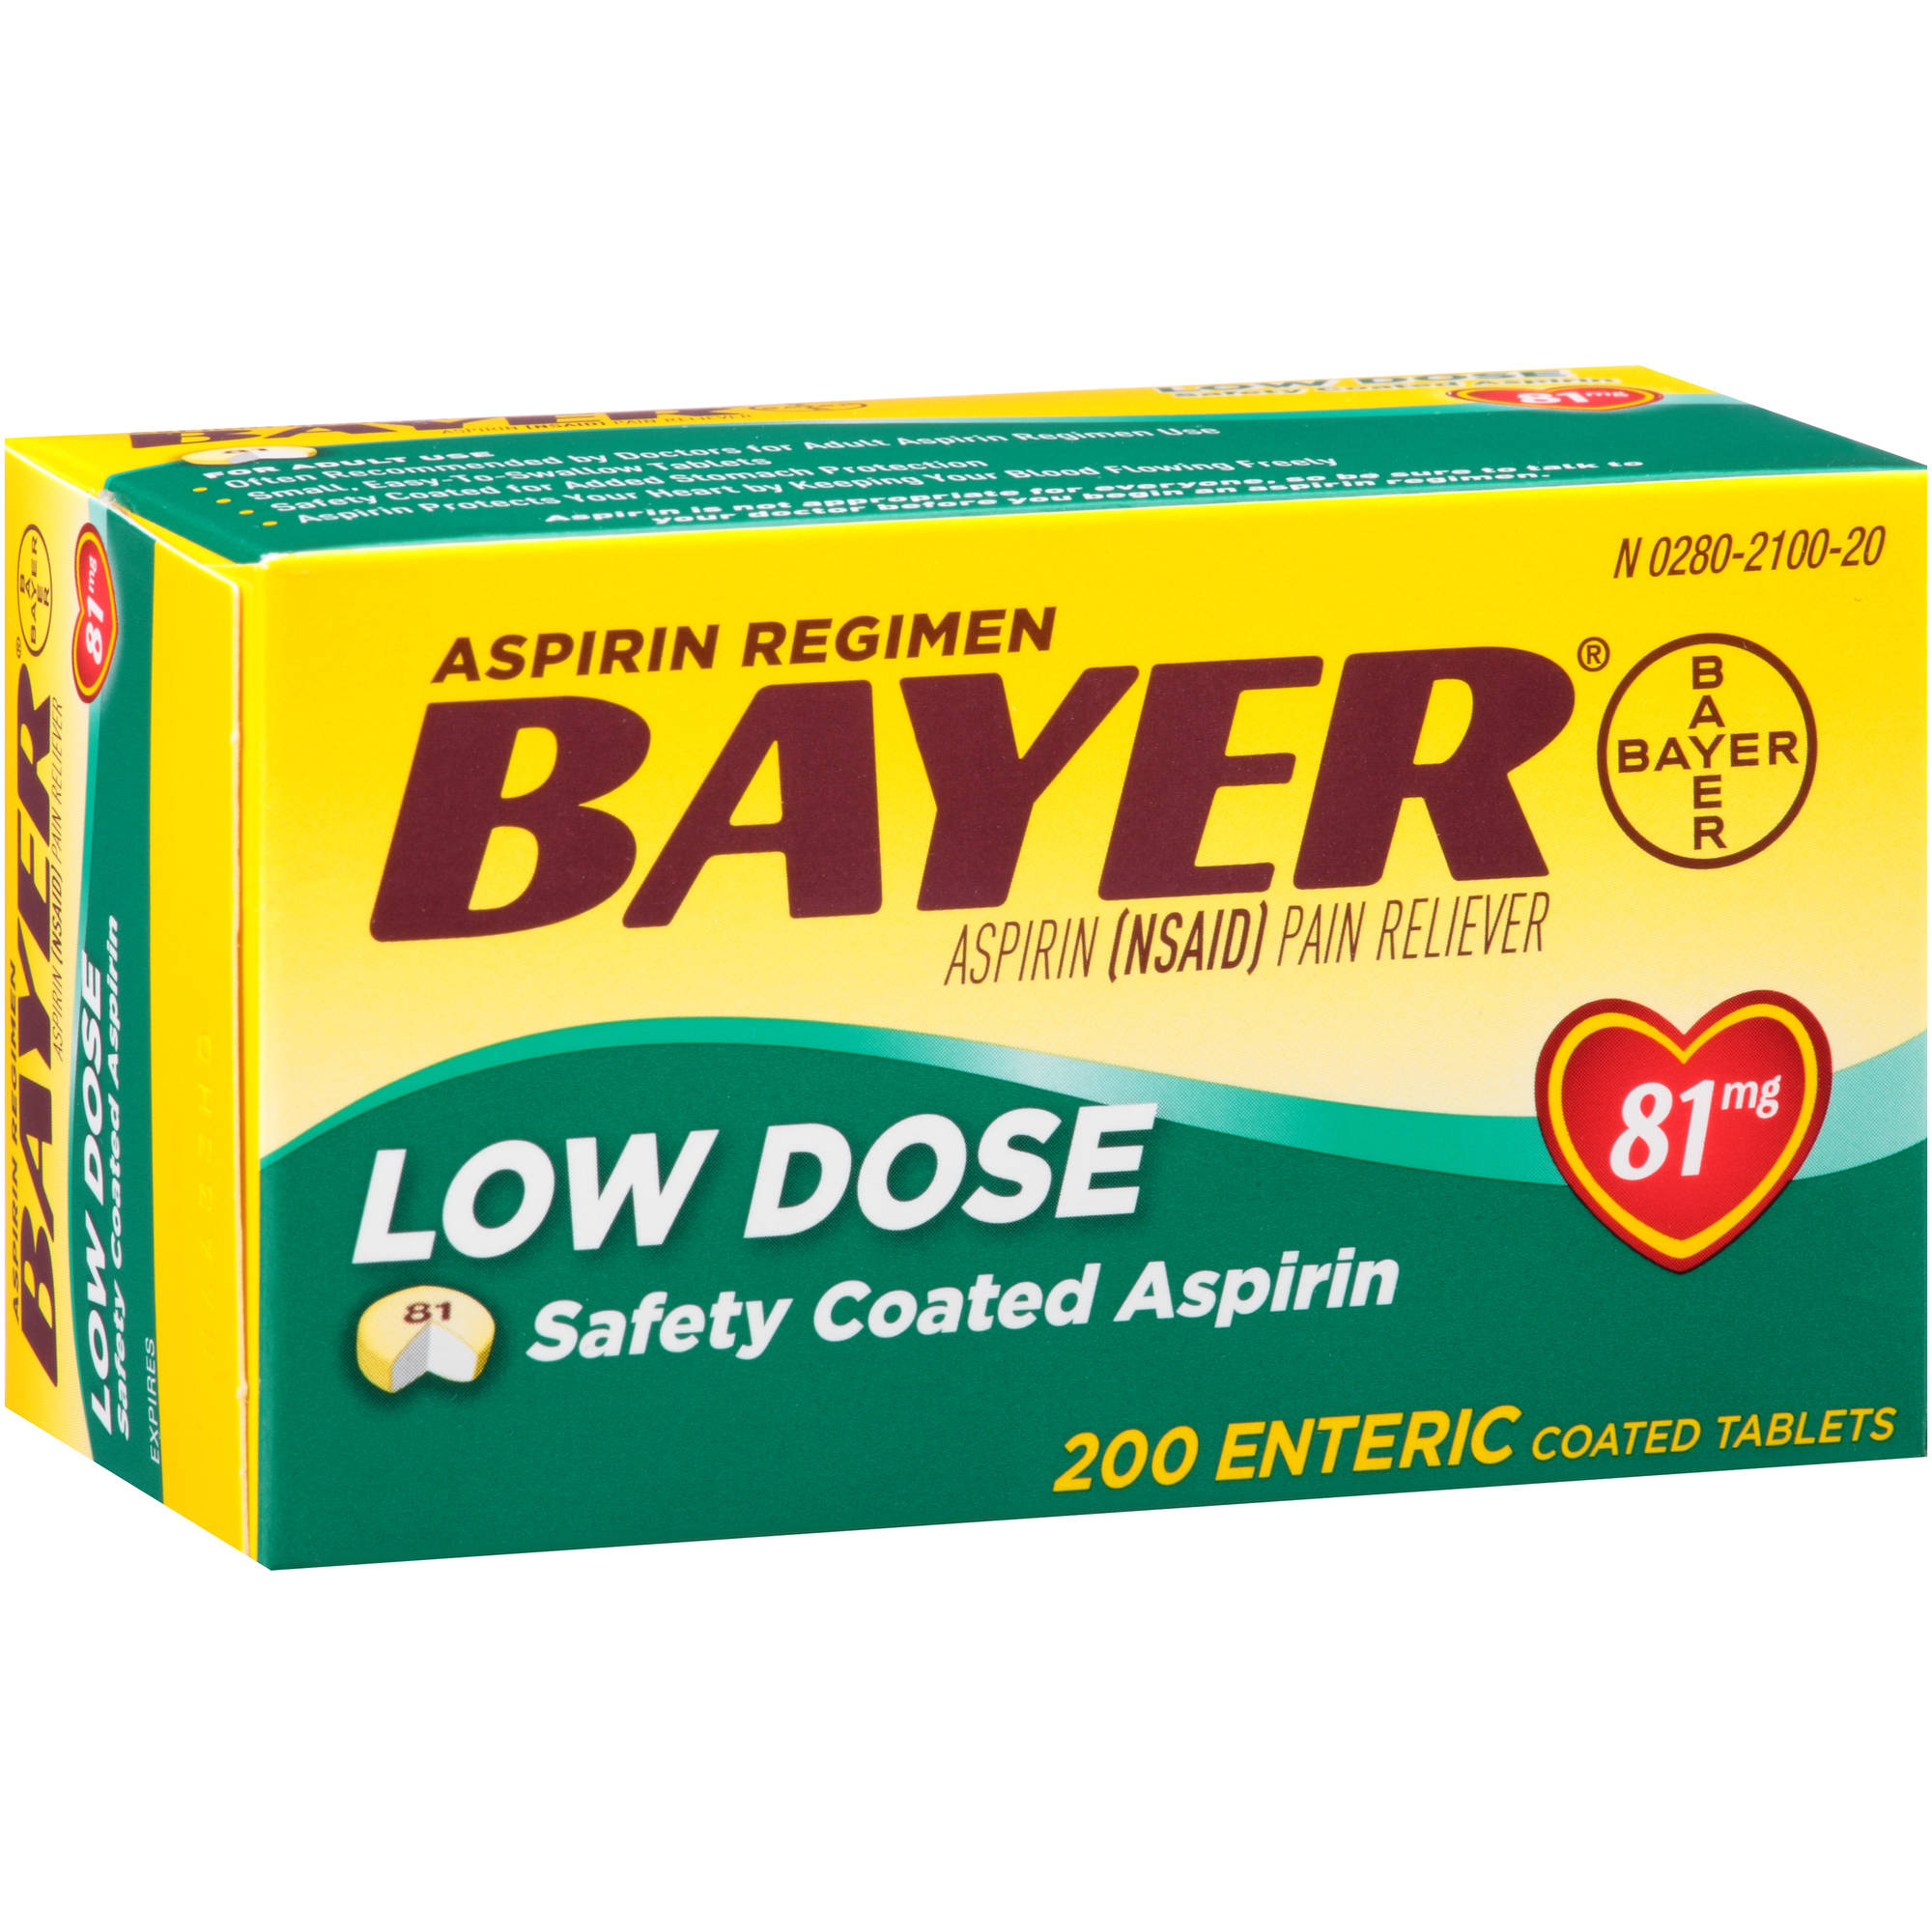 Bayer Low Dose Aspirin Enteric Coated Tablets, 81mg, 200 count